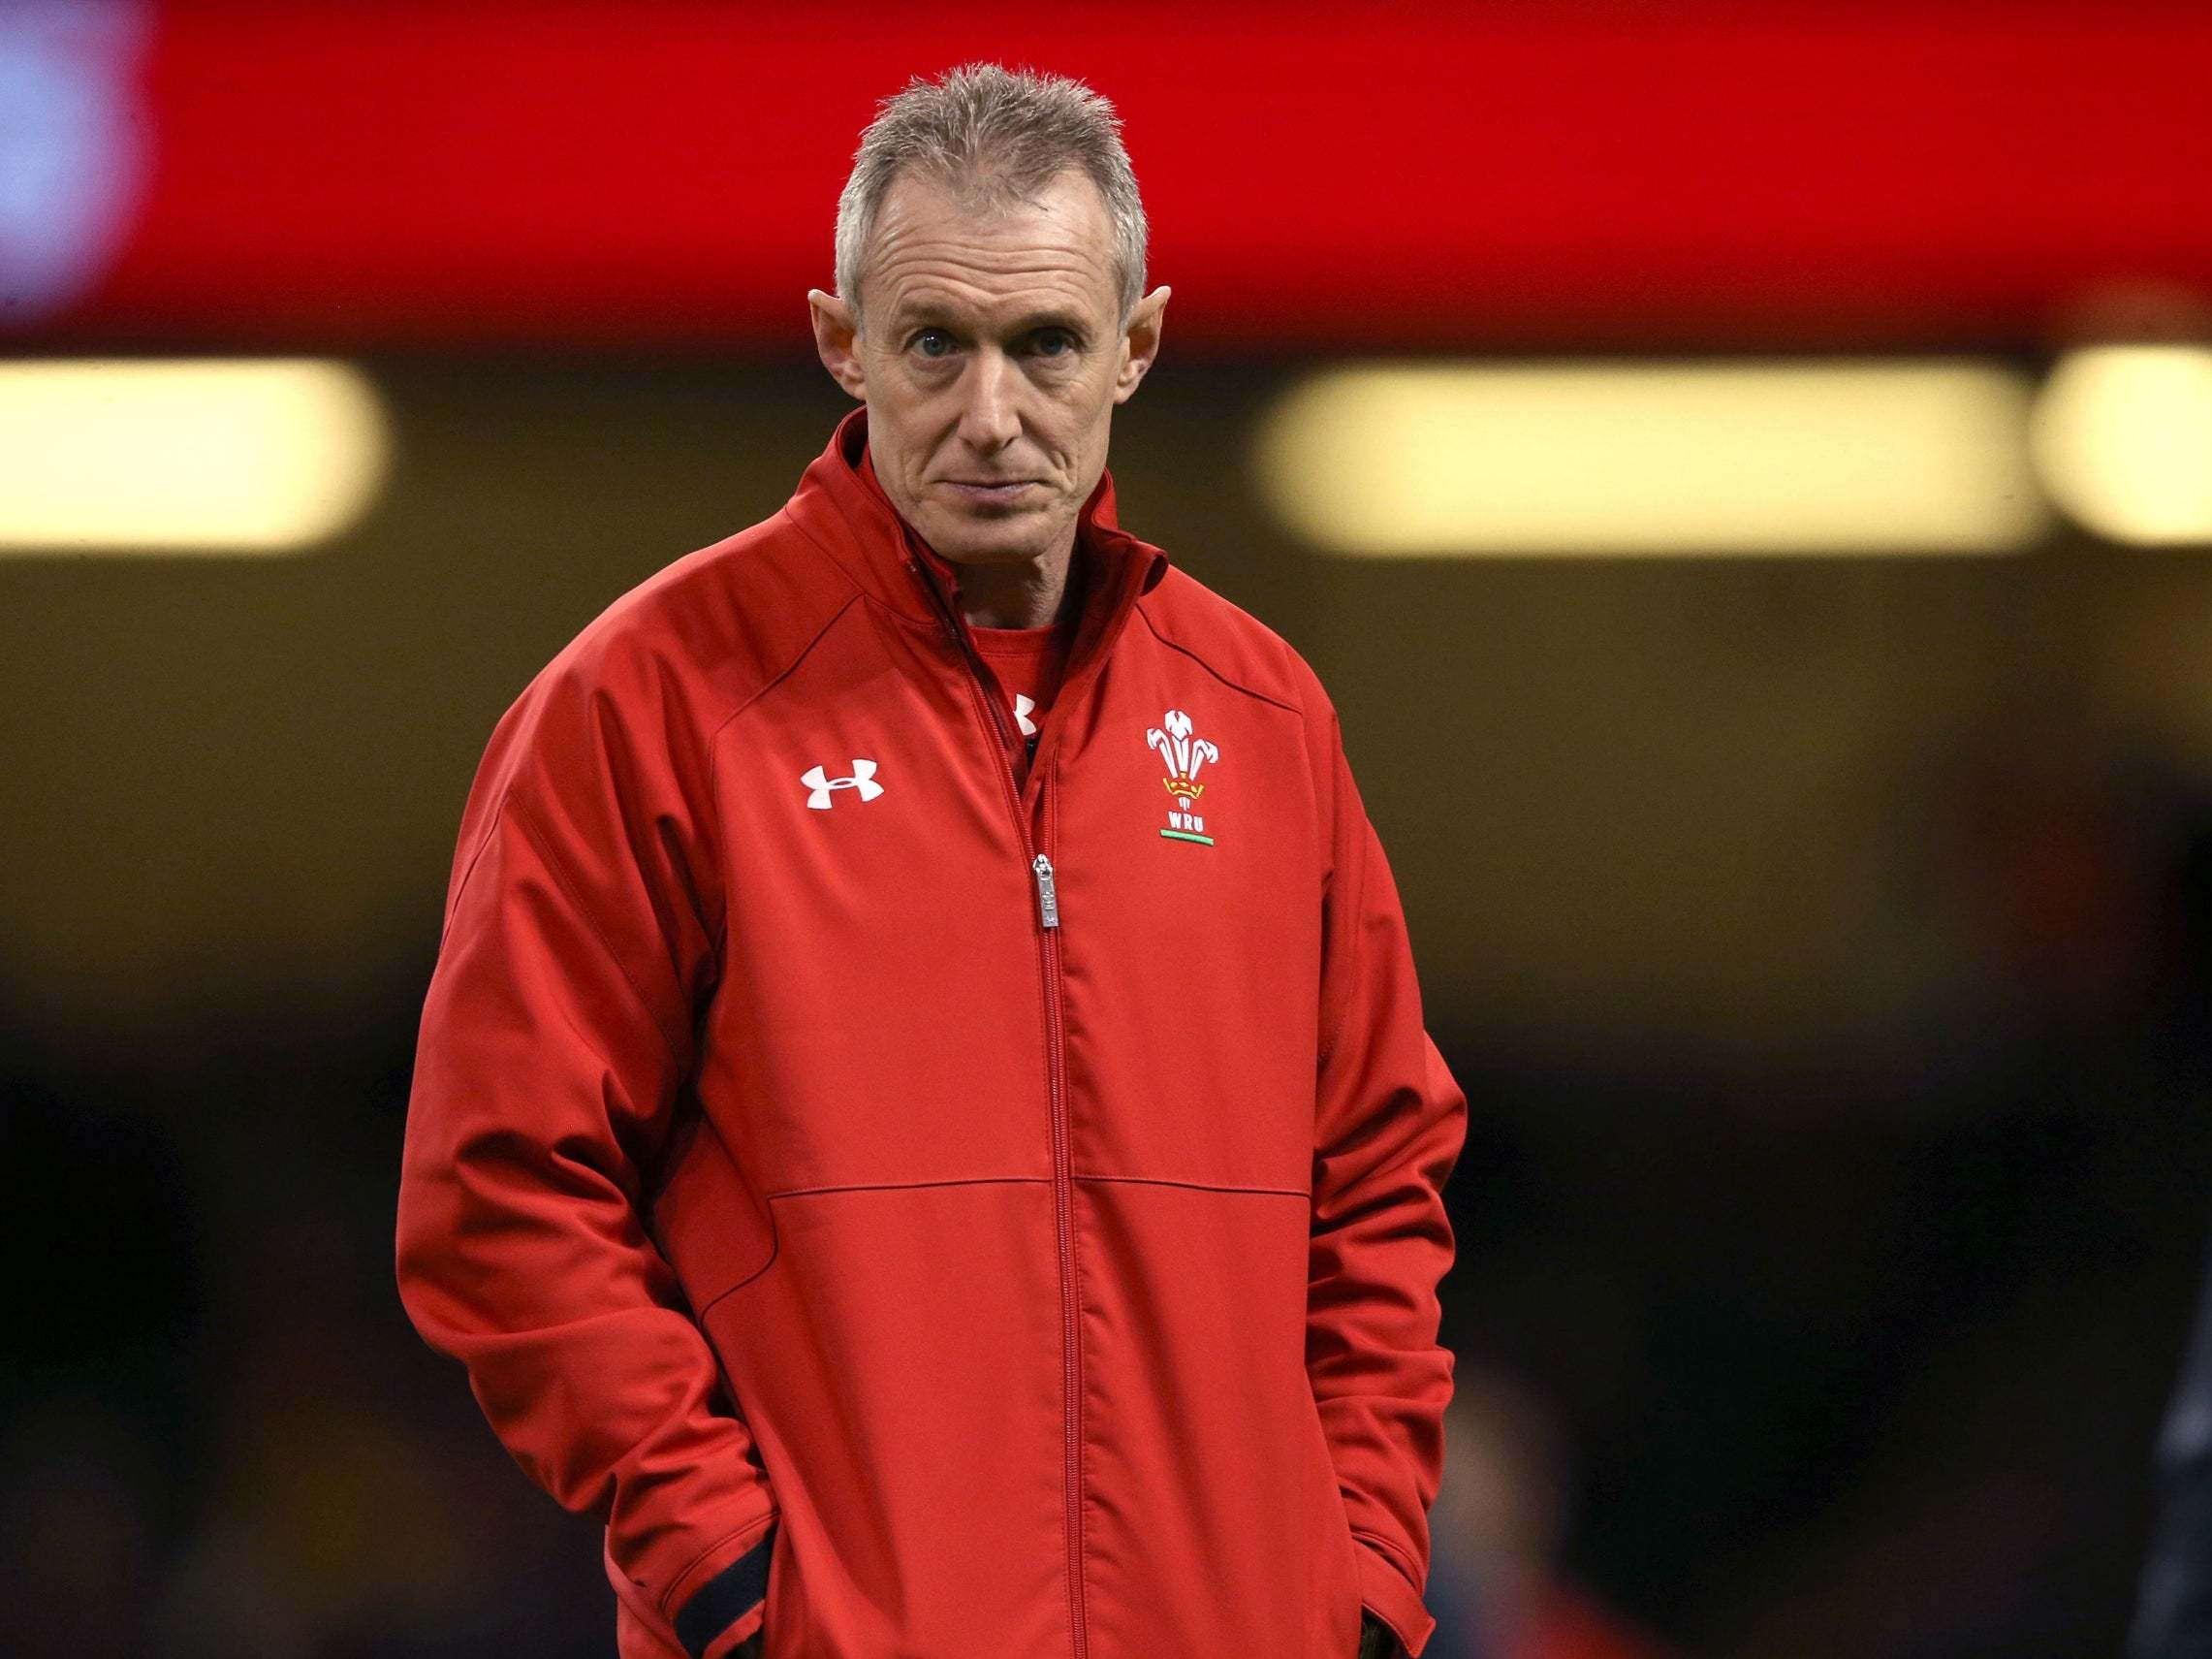 Rob Howley suspended for 18 months after breaching World Rugby betting regulations